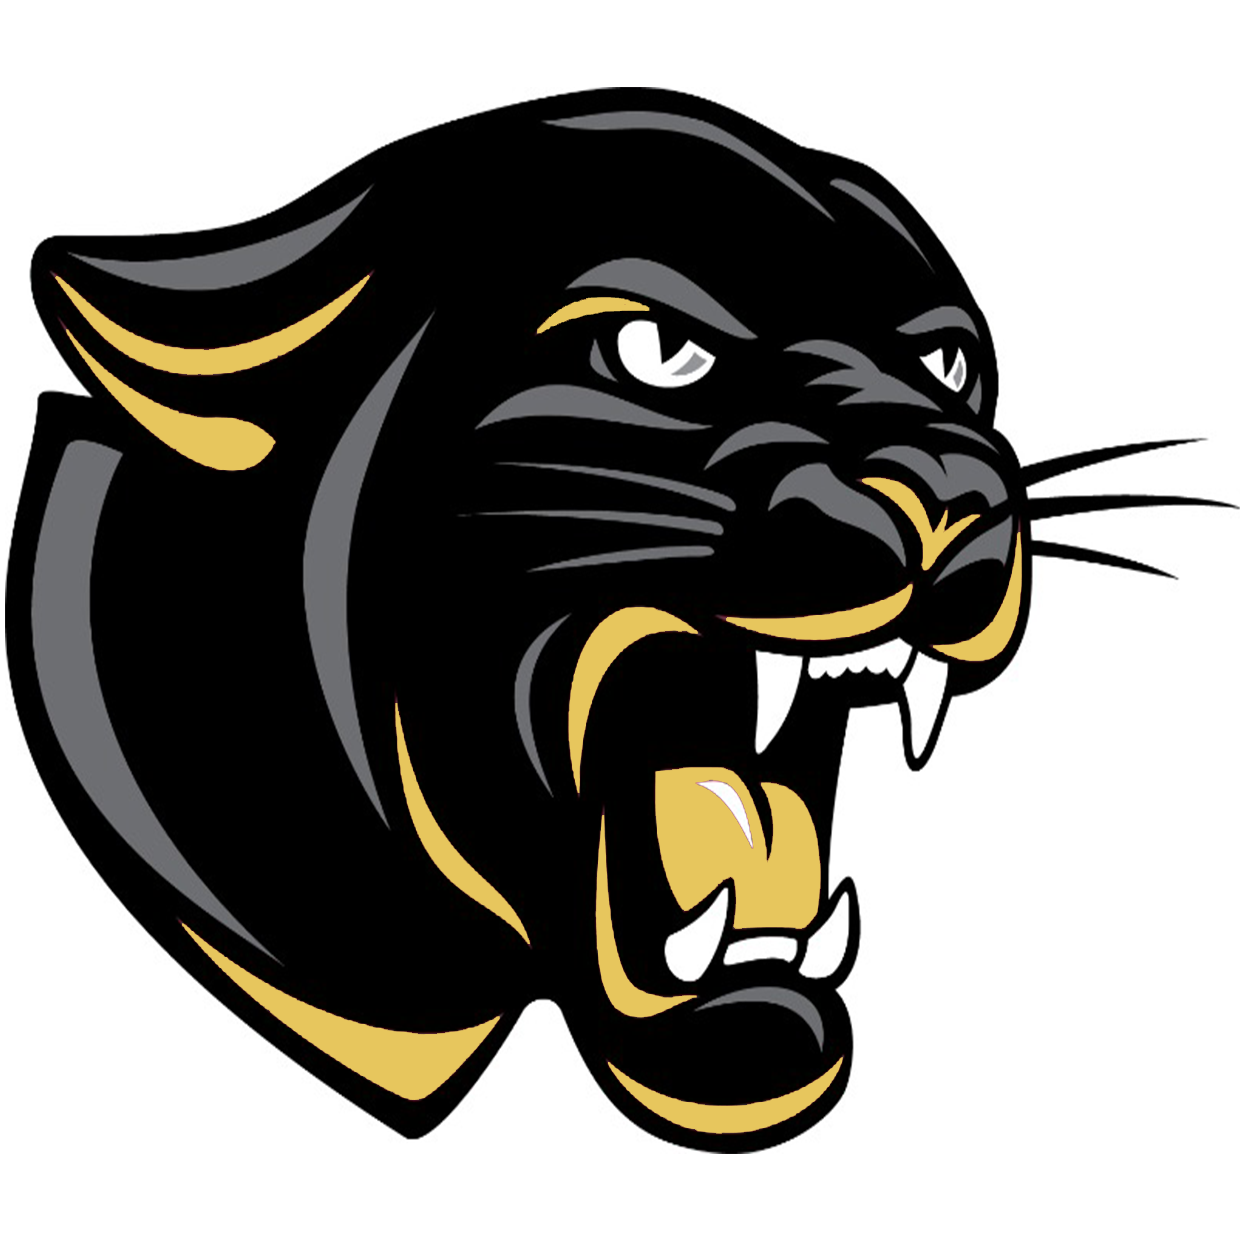 Corydon Central Panthers